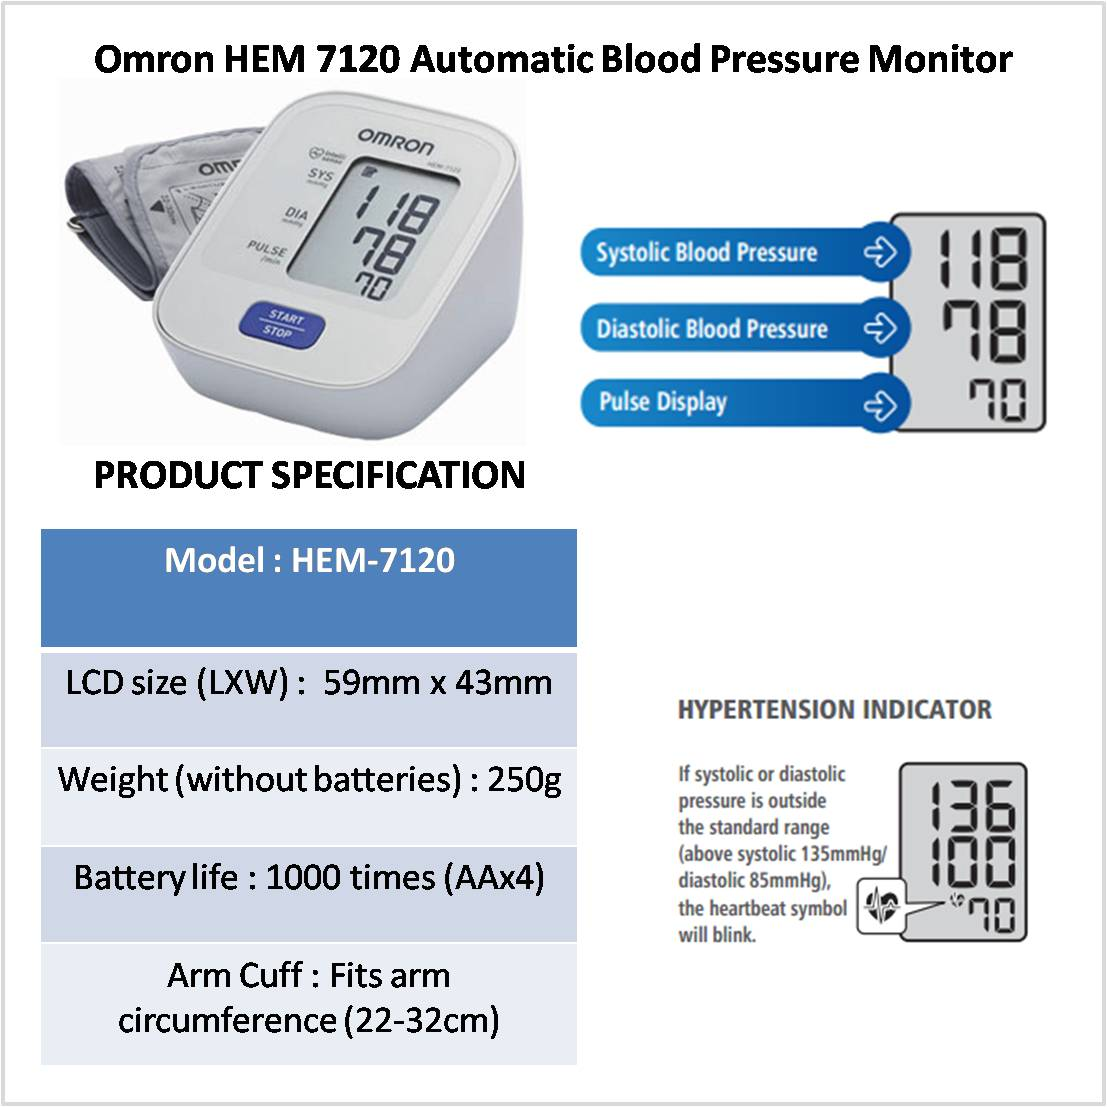 Omron blood pressure recording chart gallery free any chart examples omron blood pressure recording chart choice image free any chart omron blood pressure recording chart images nvjuhfo Images